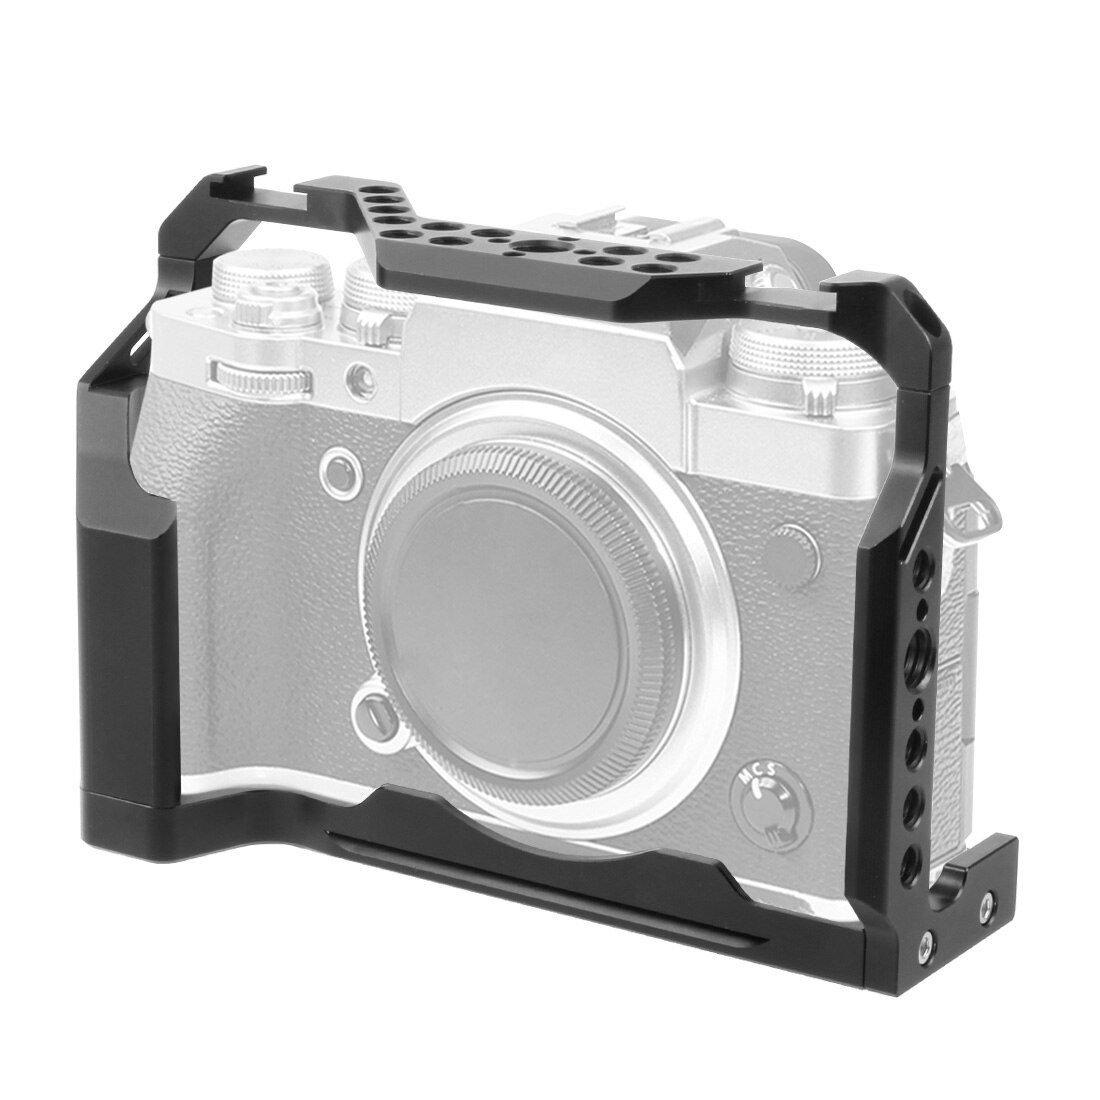 FEICHAO X-T4 Camera Cage Formfitting Protective Full Cage for FUJIFILM Fuji XT4 W/ Cold Shoe Mount for Mic Flash Light Tripod enlarge